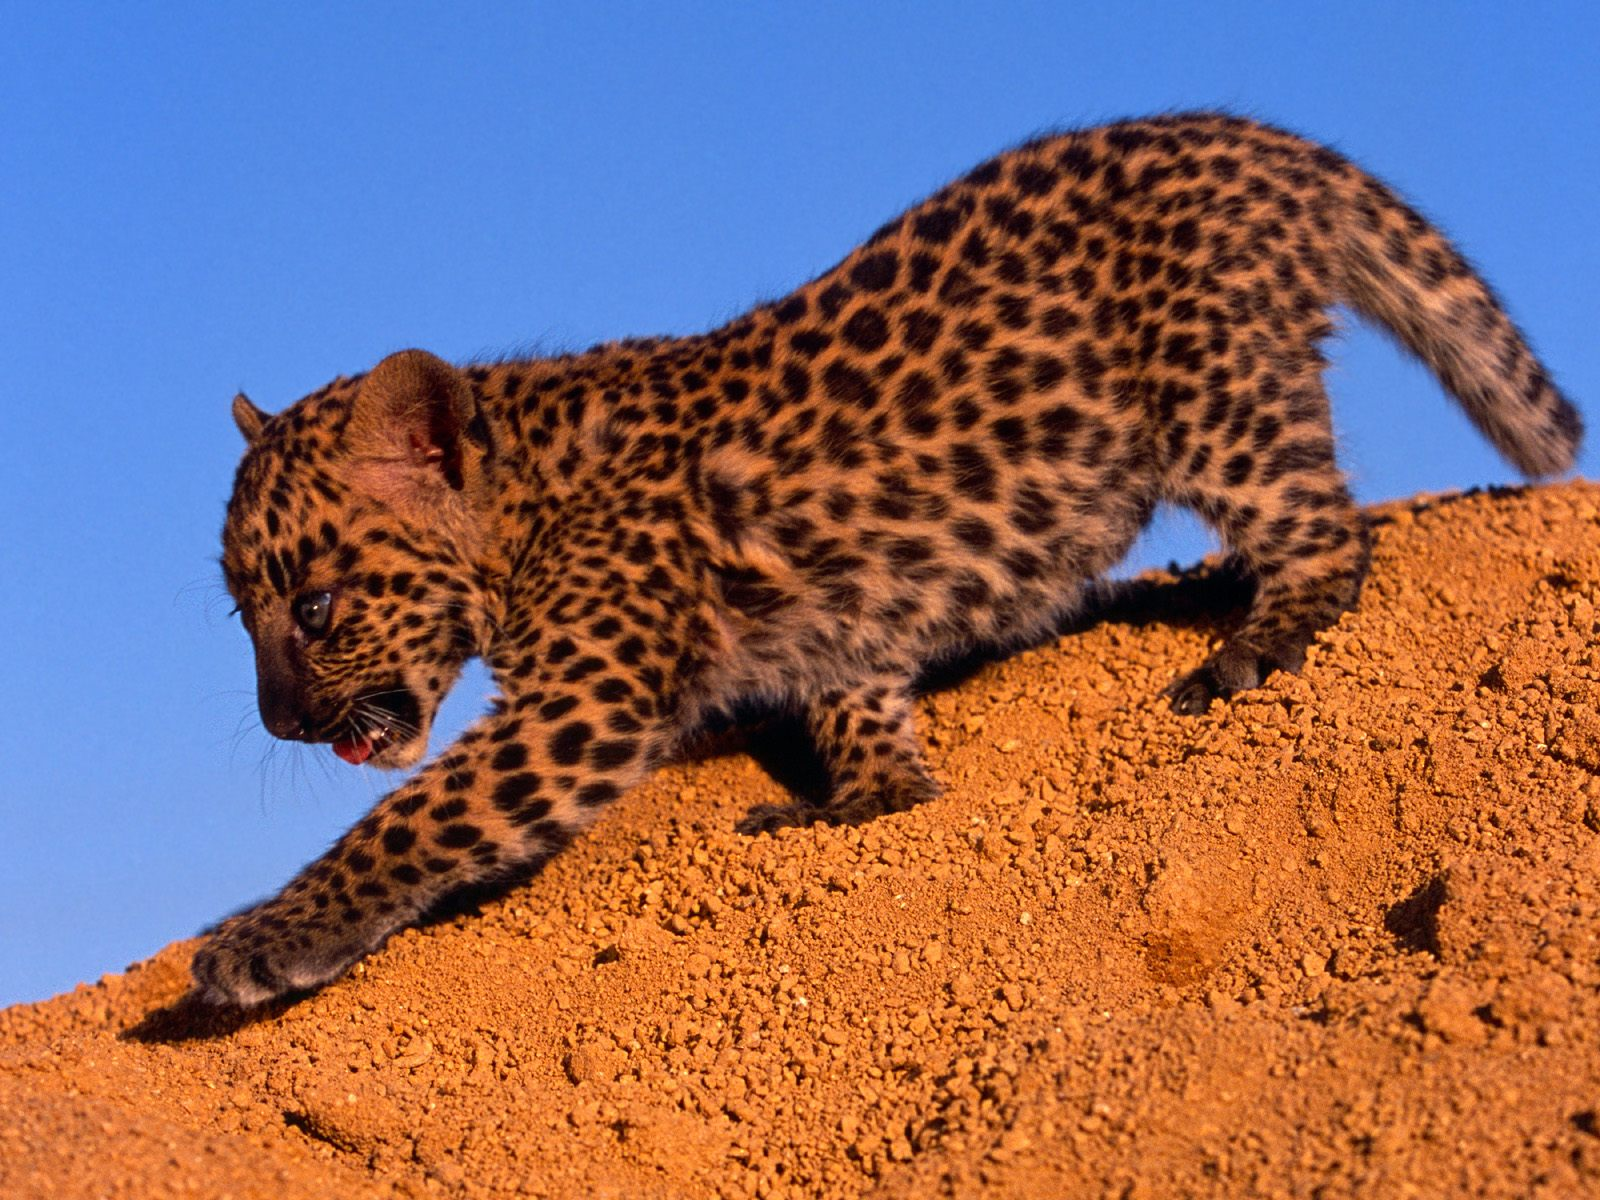 Spotted Leopard Cub